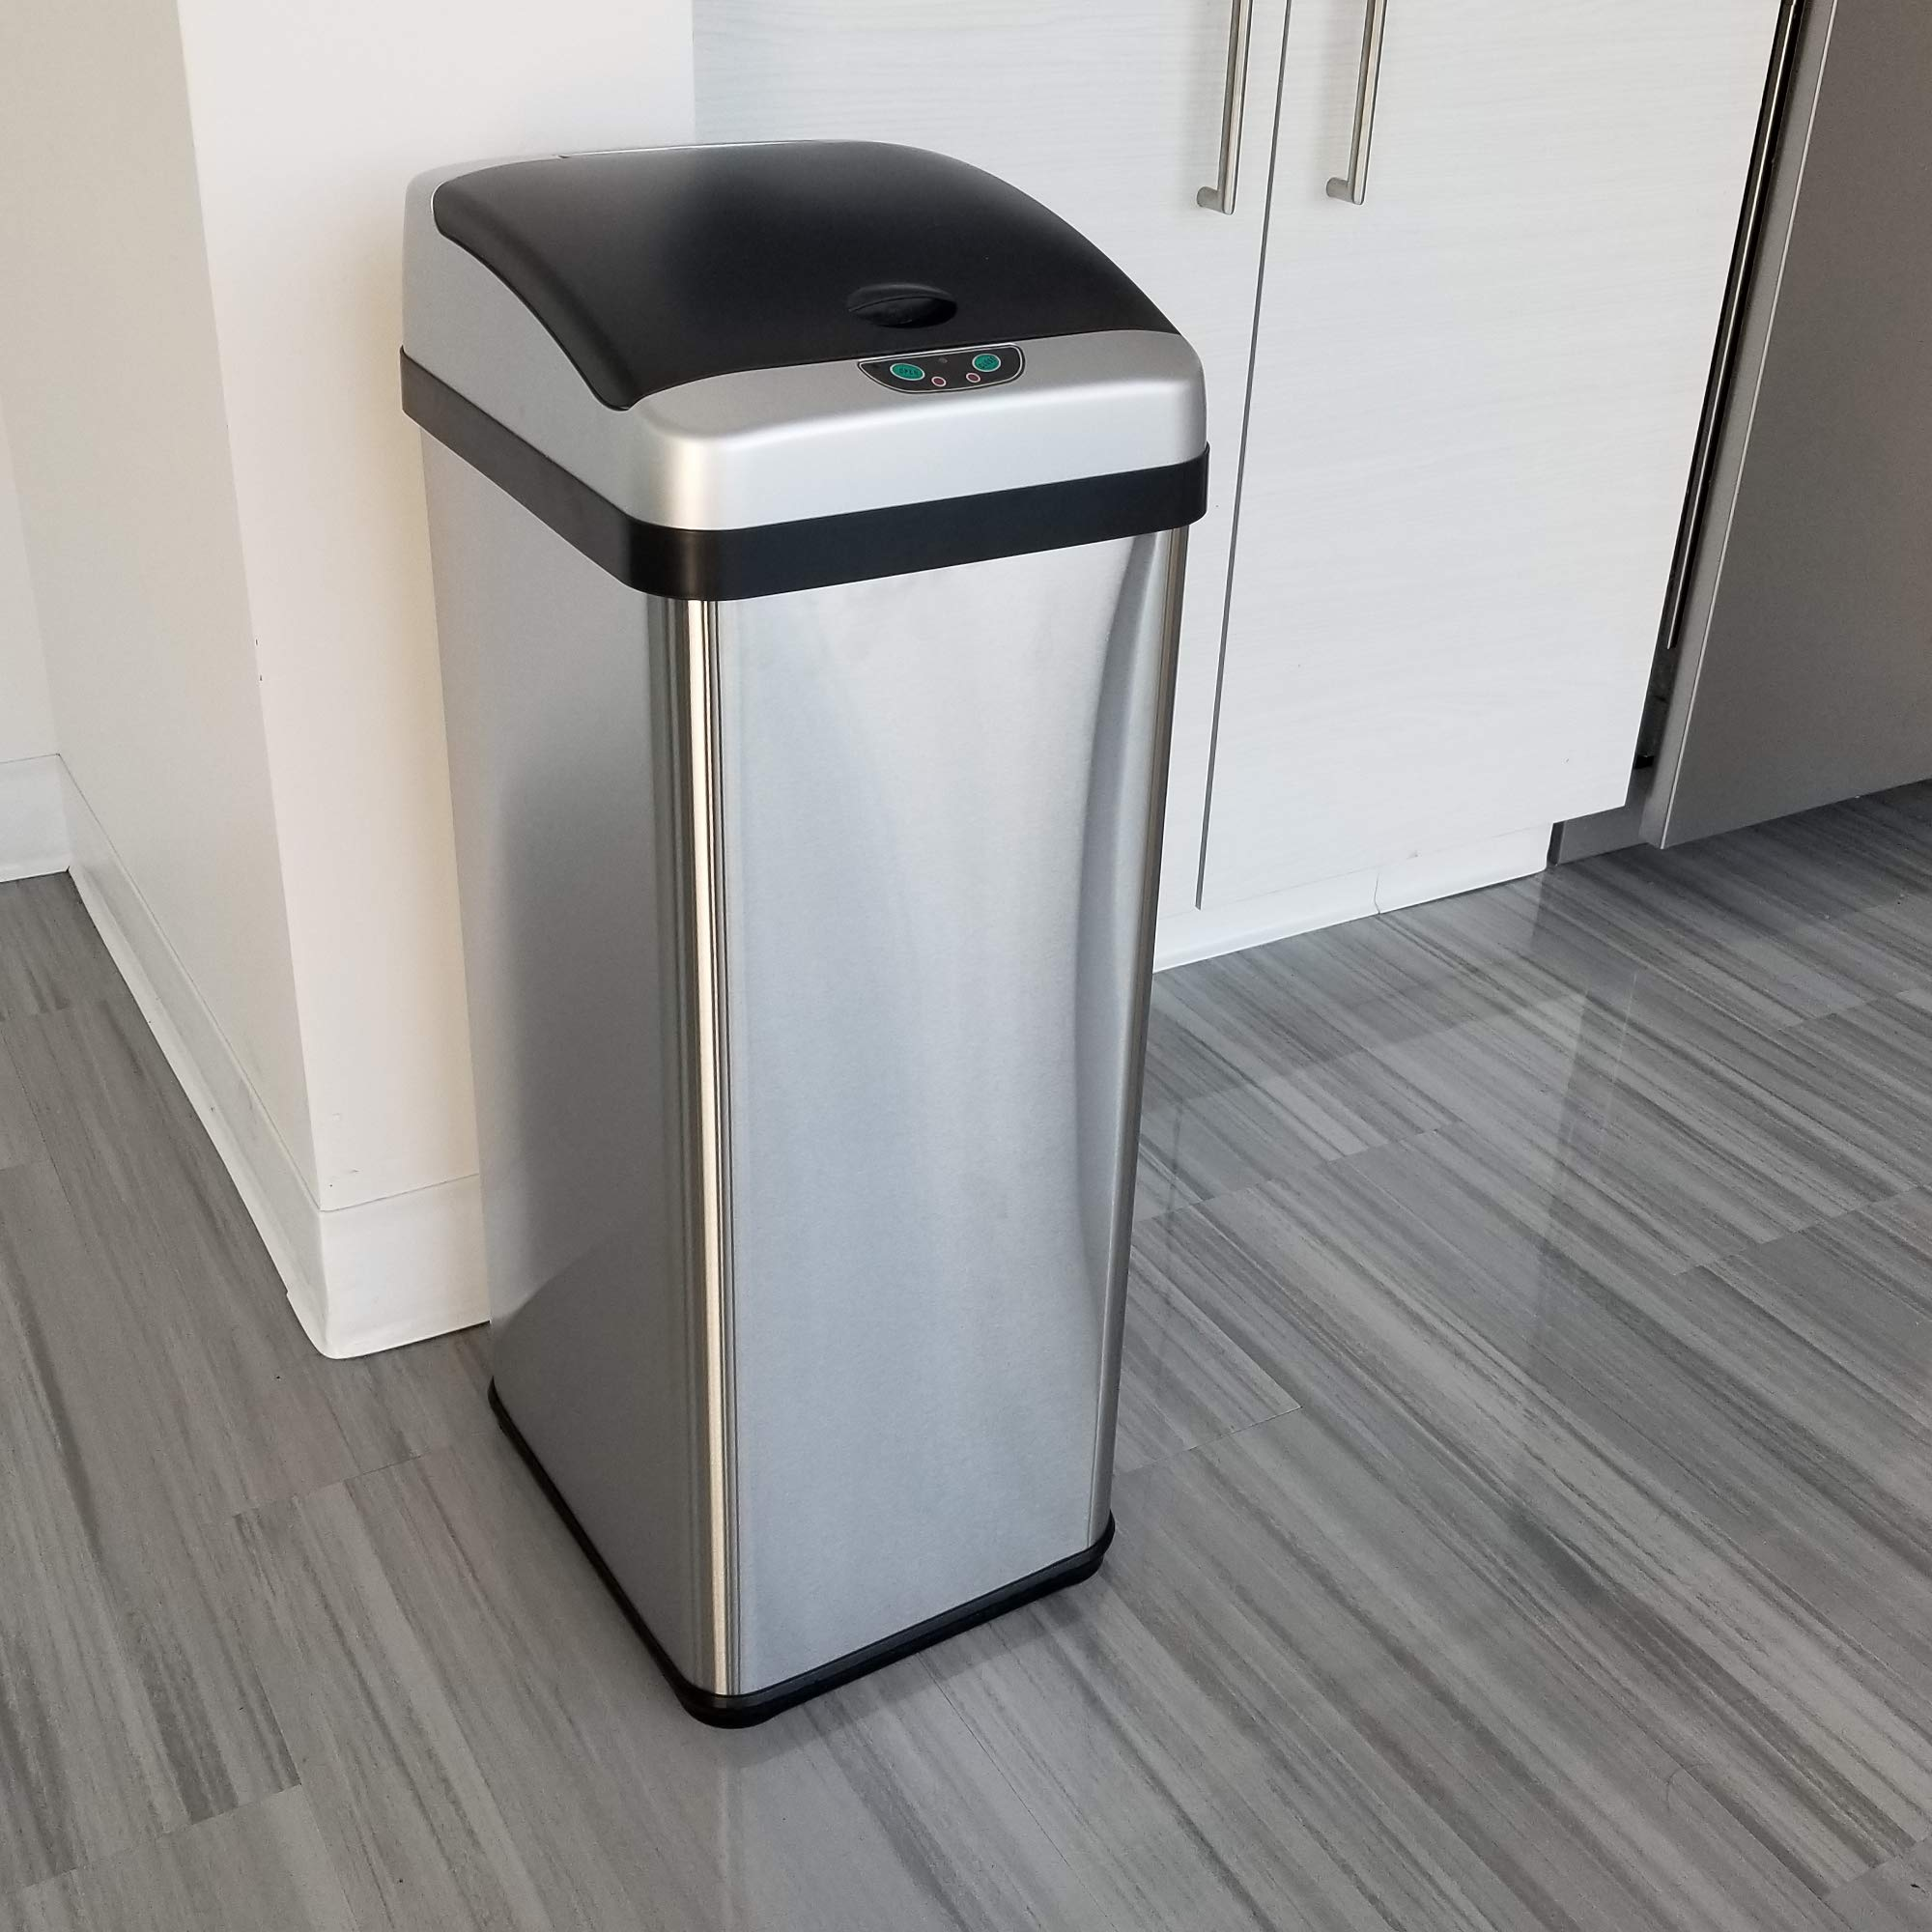 iTouchless RX 13 Gallon Stainless Steel Touchless Trash Can with AC Adapter Platinum Limited Edition, Odor Control System Kitchen Bin, by iTouchless (Image #4)